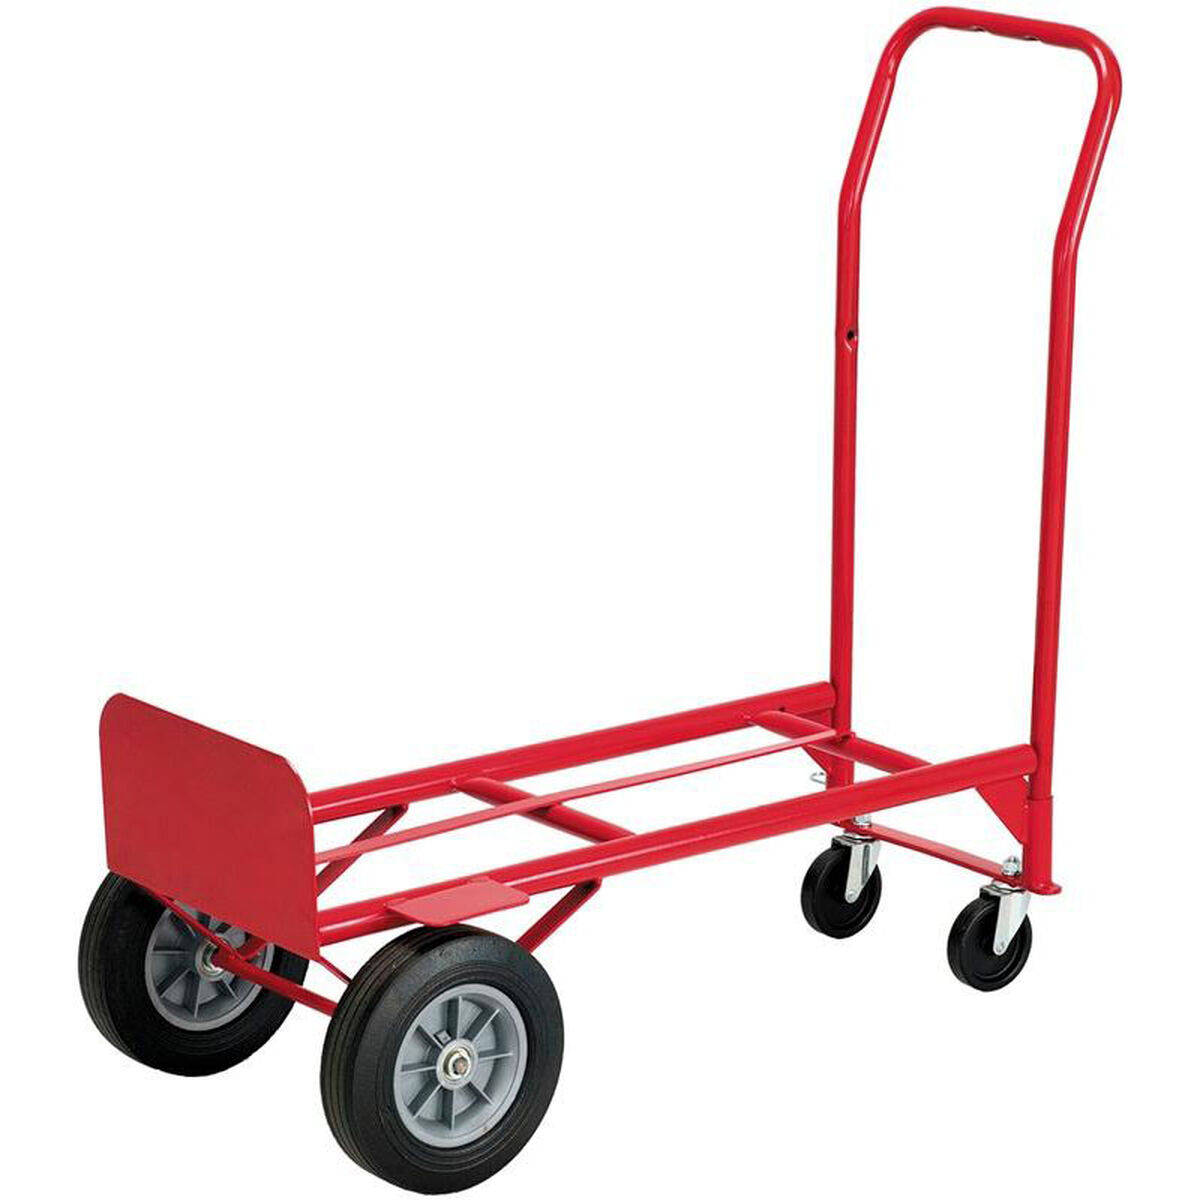 our 18 w x 16 d x 51 h convertible - Heavy Duty Hand Truck